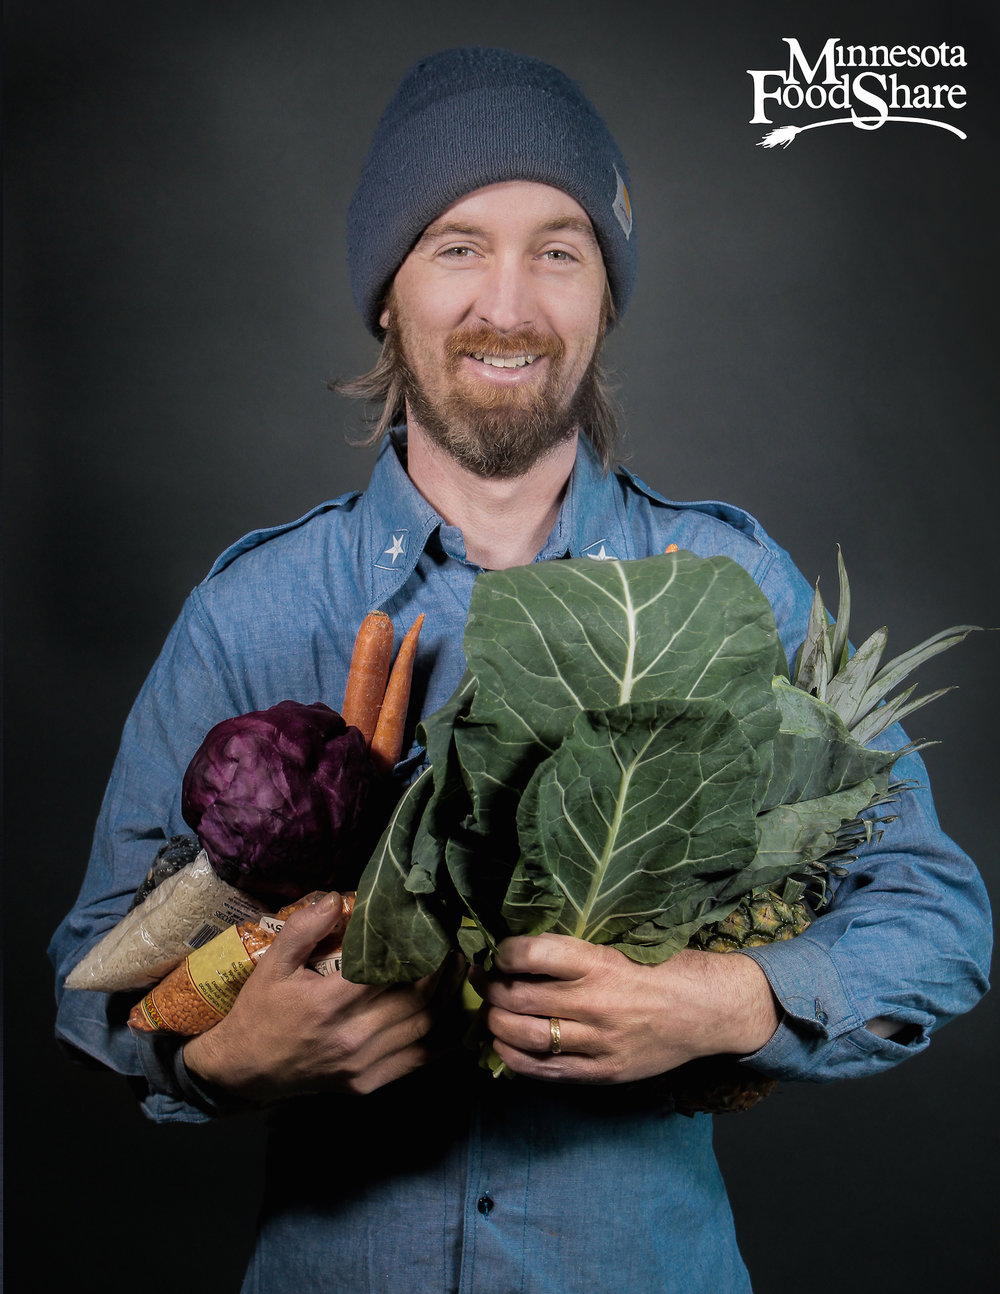 MINNESOTA FOODSHARE - Seth McGaha - Design, Website, Photography